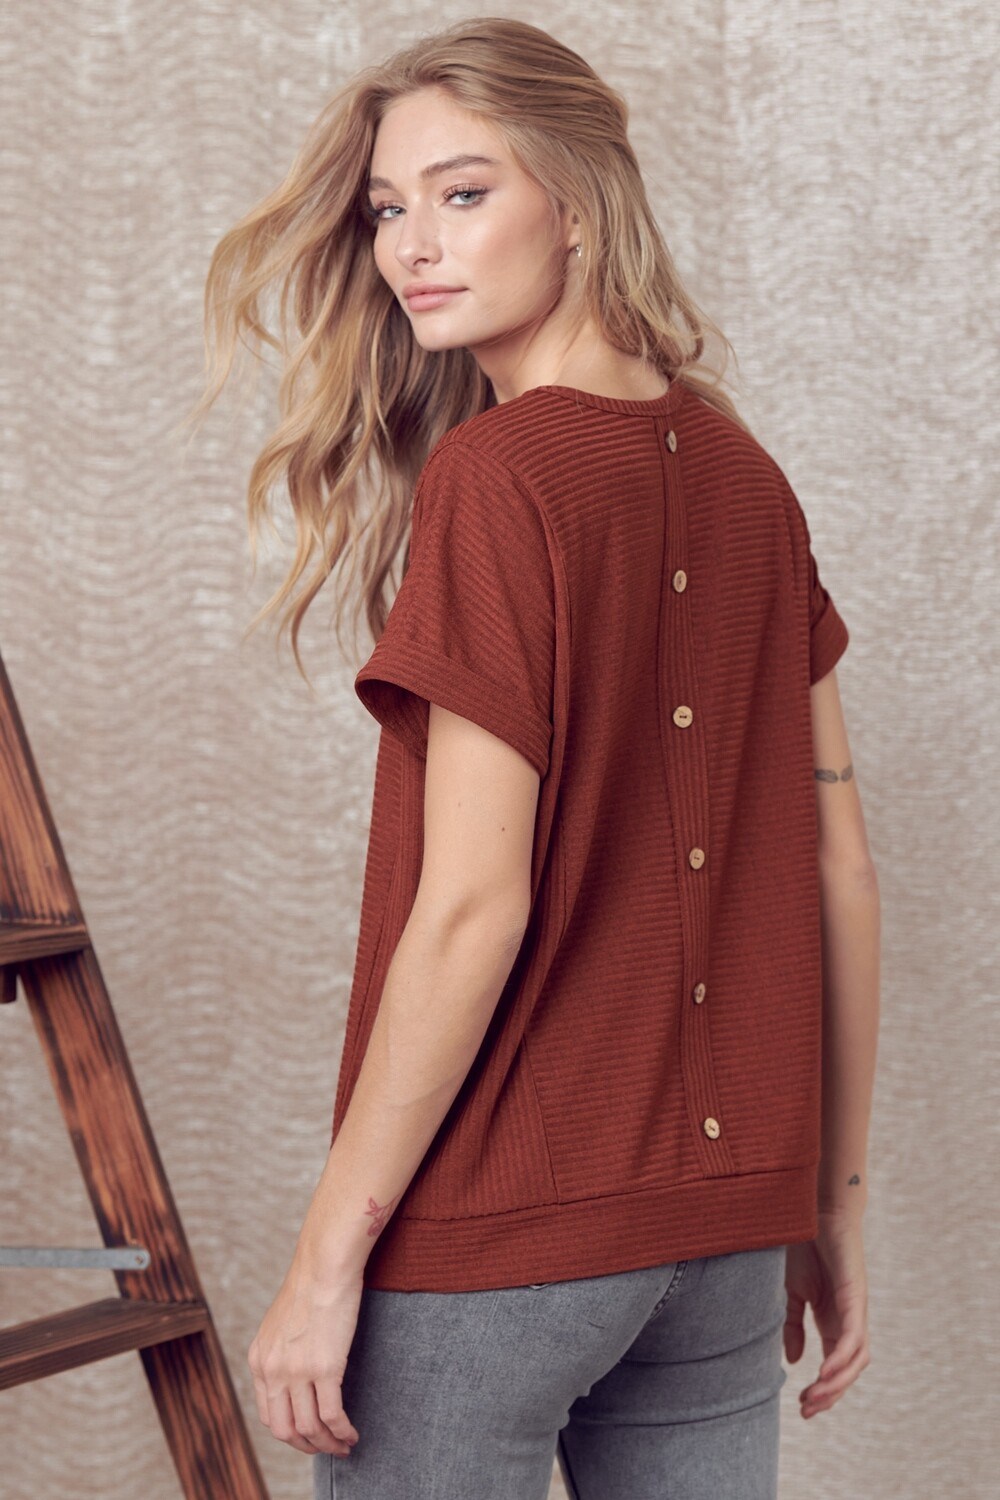 Cuffed Sleeve Top with Back Button